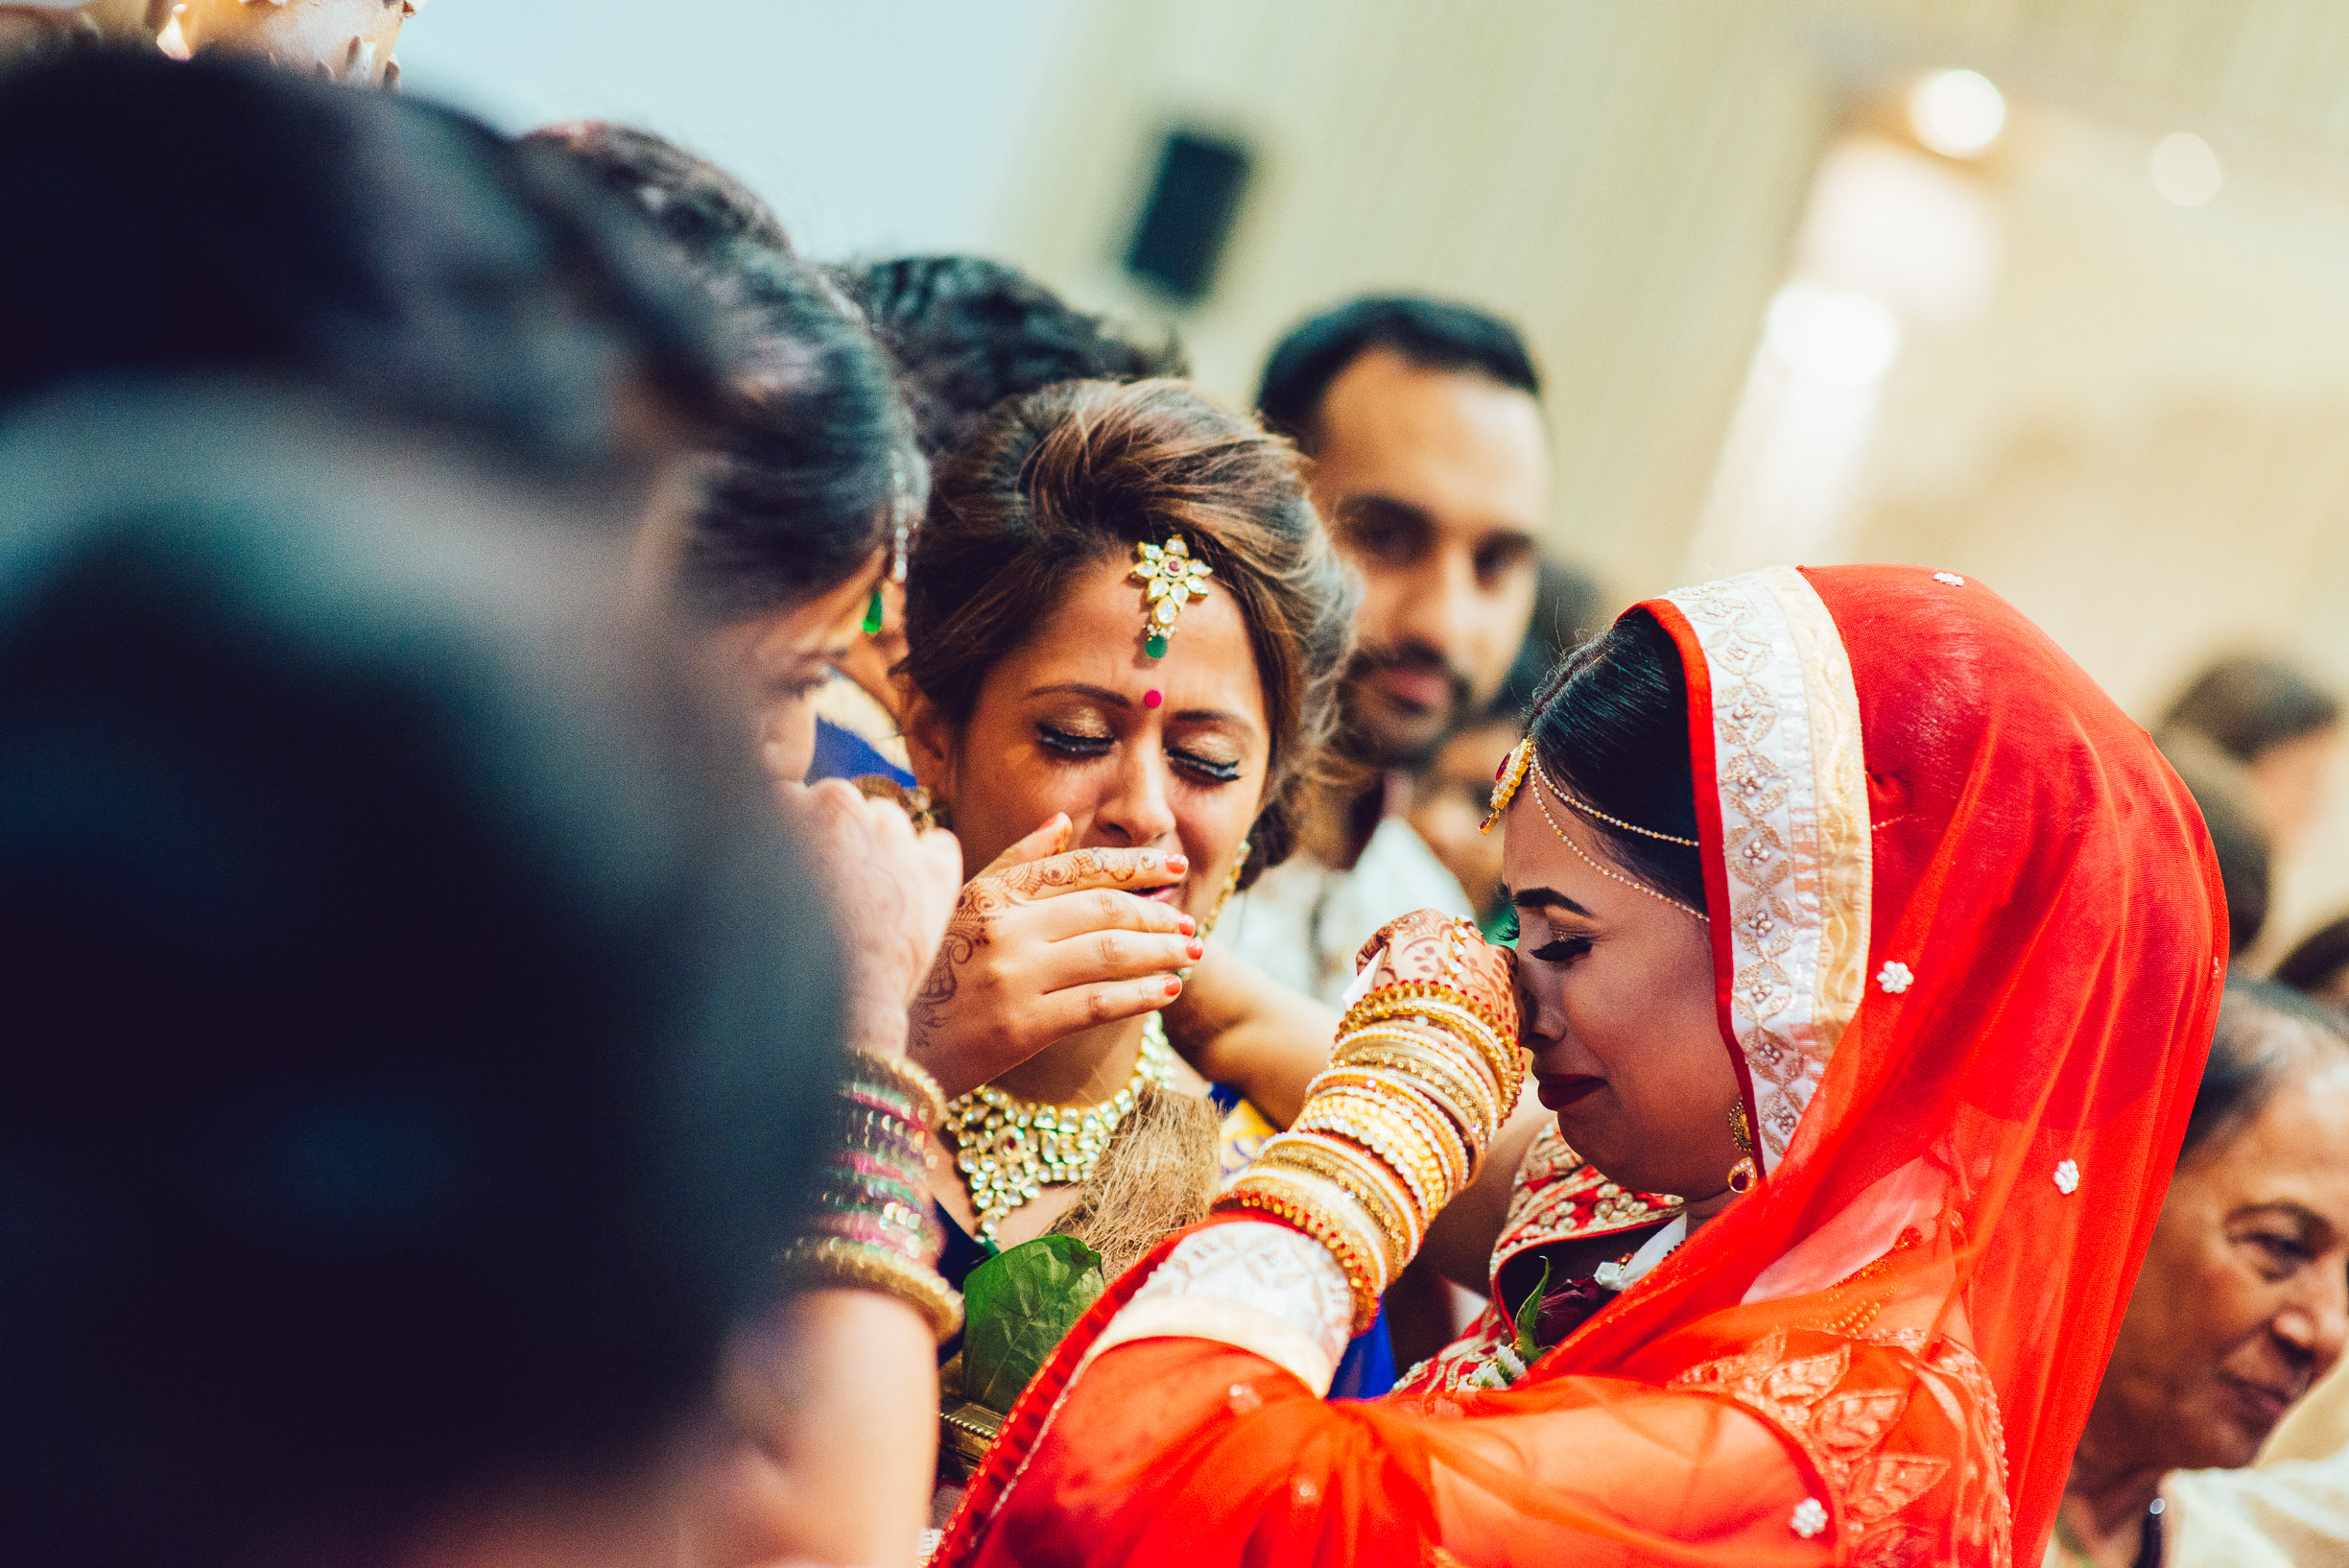 amit&ceema_eden_moments_wedding_photography-23